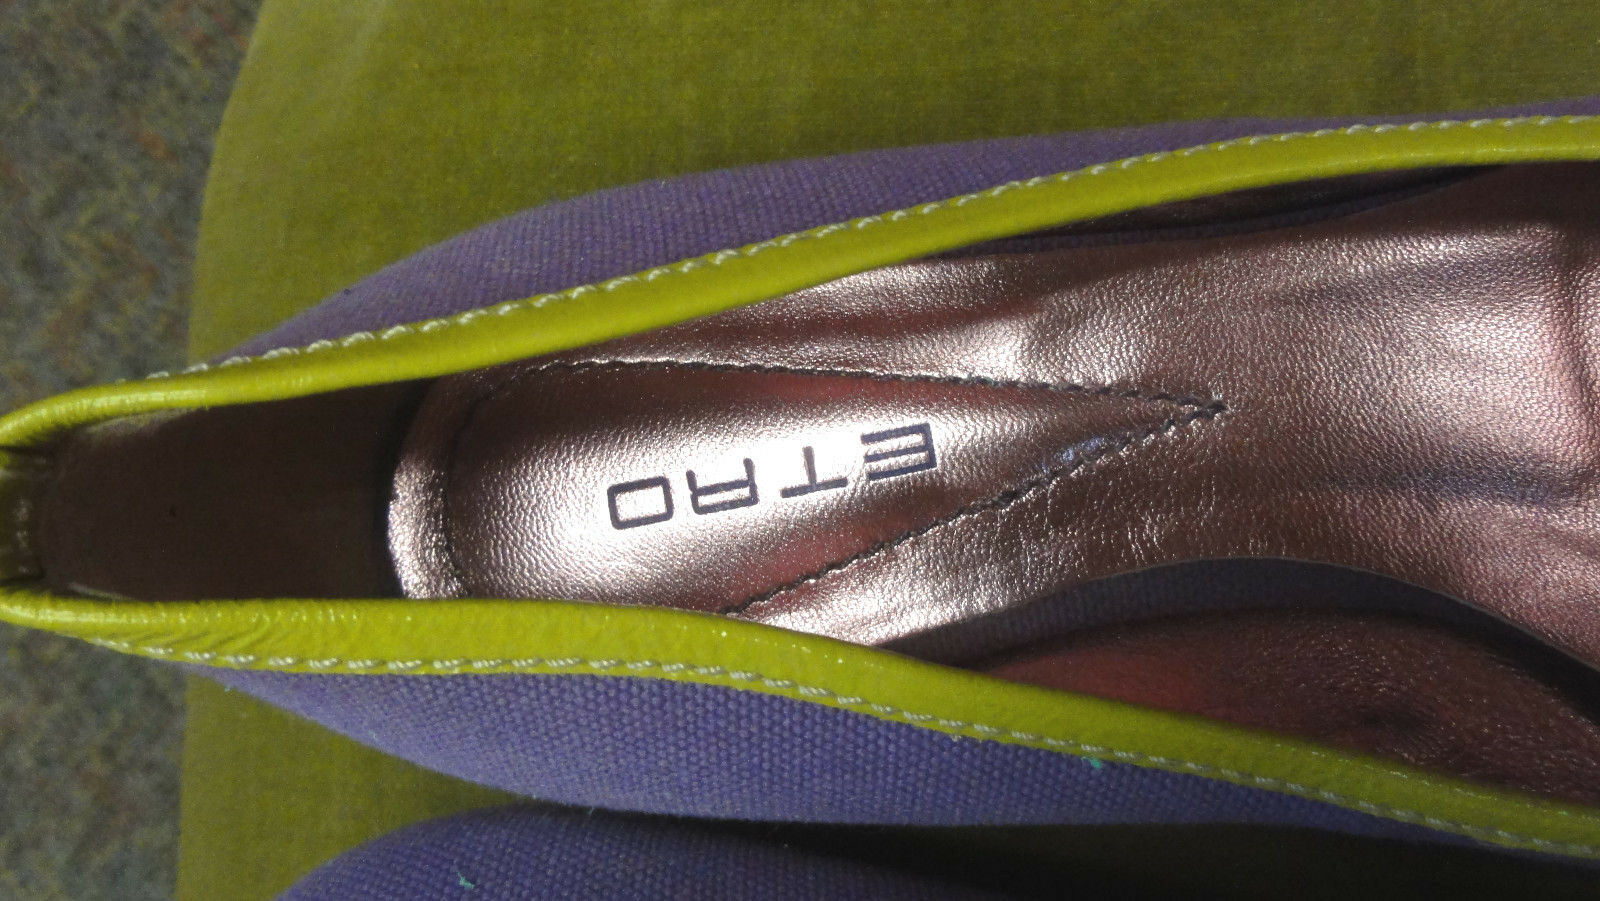 ETRO PURPLE BALLET FLATS PURPLE ETRO WITH BOWS SIZE 36.5 or 6.5 0001f2